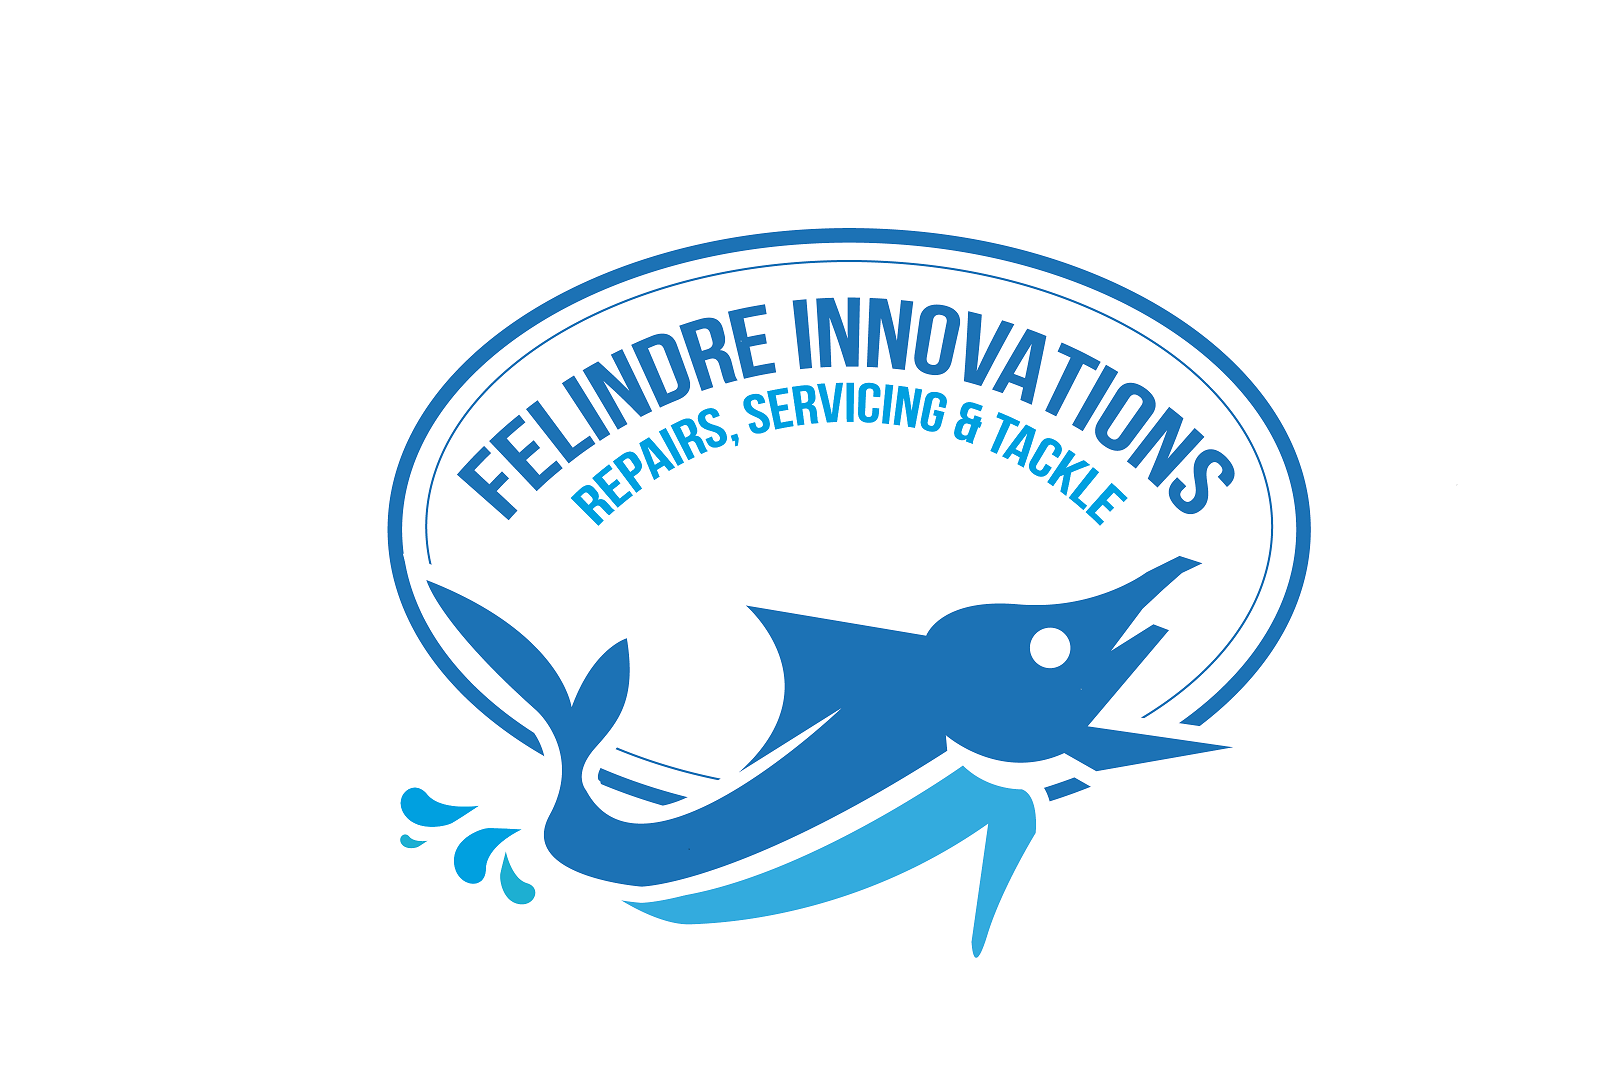 felindreinnovations